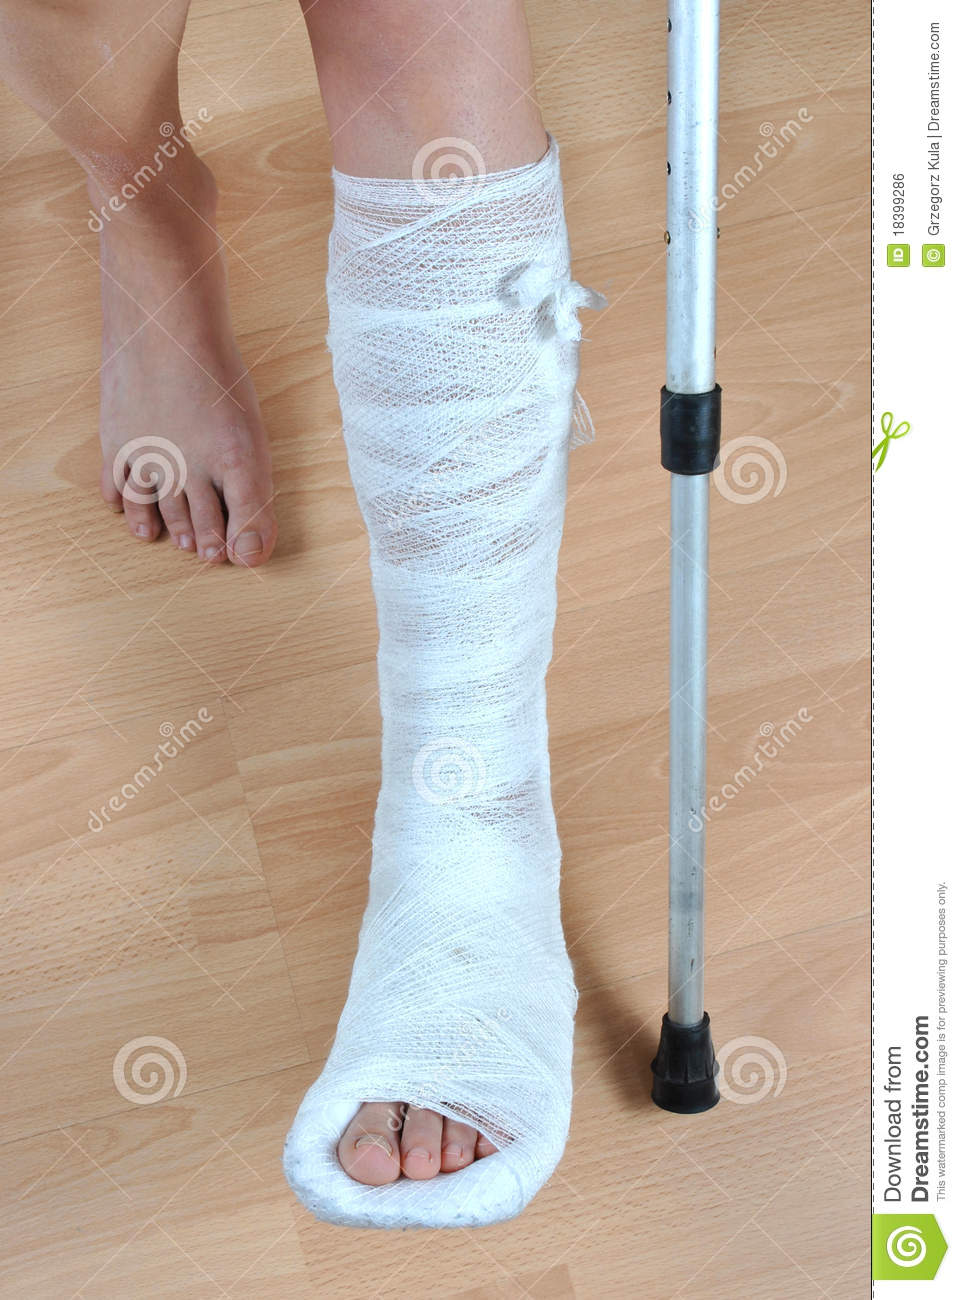 broken leg royalty free stock image cartoondealer com bone fracture clipart bone fracture clipart